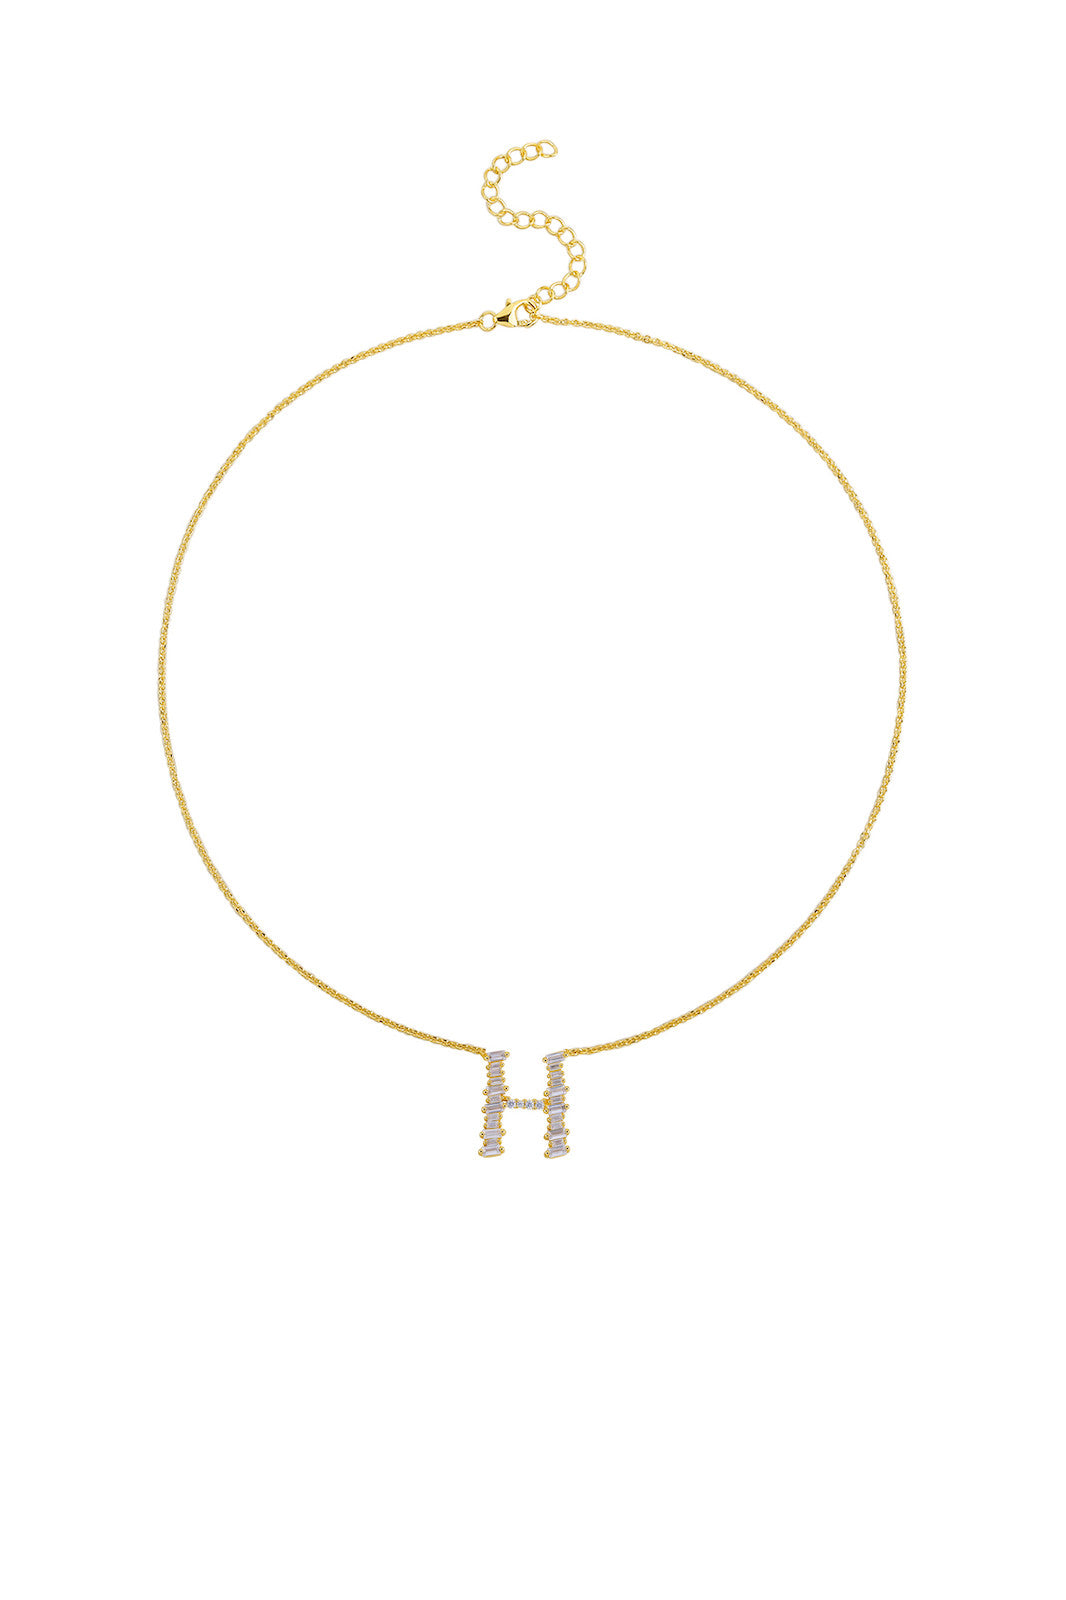 Gold Plated Sterling Silver Initial Necklace - Letter H Detail